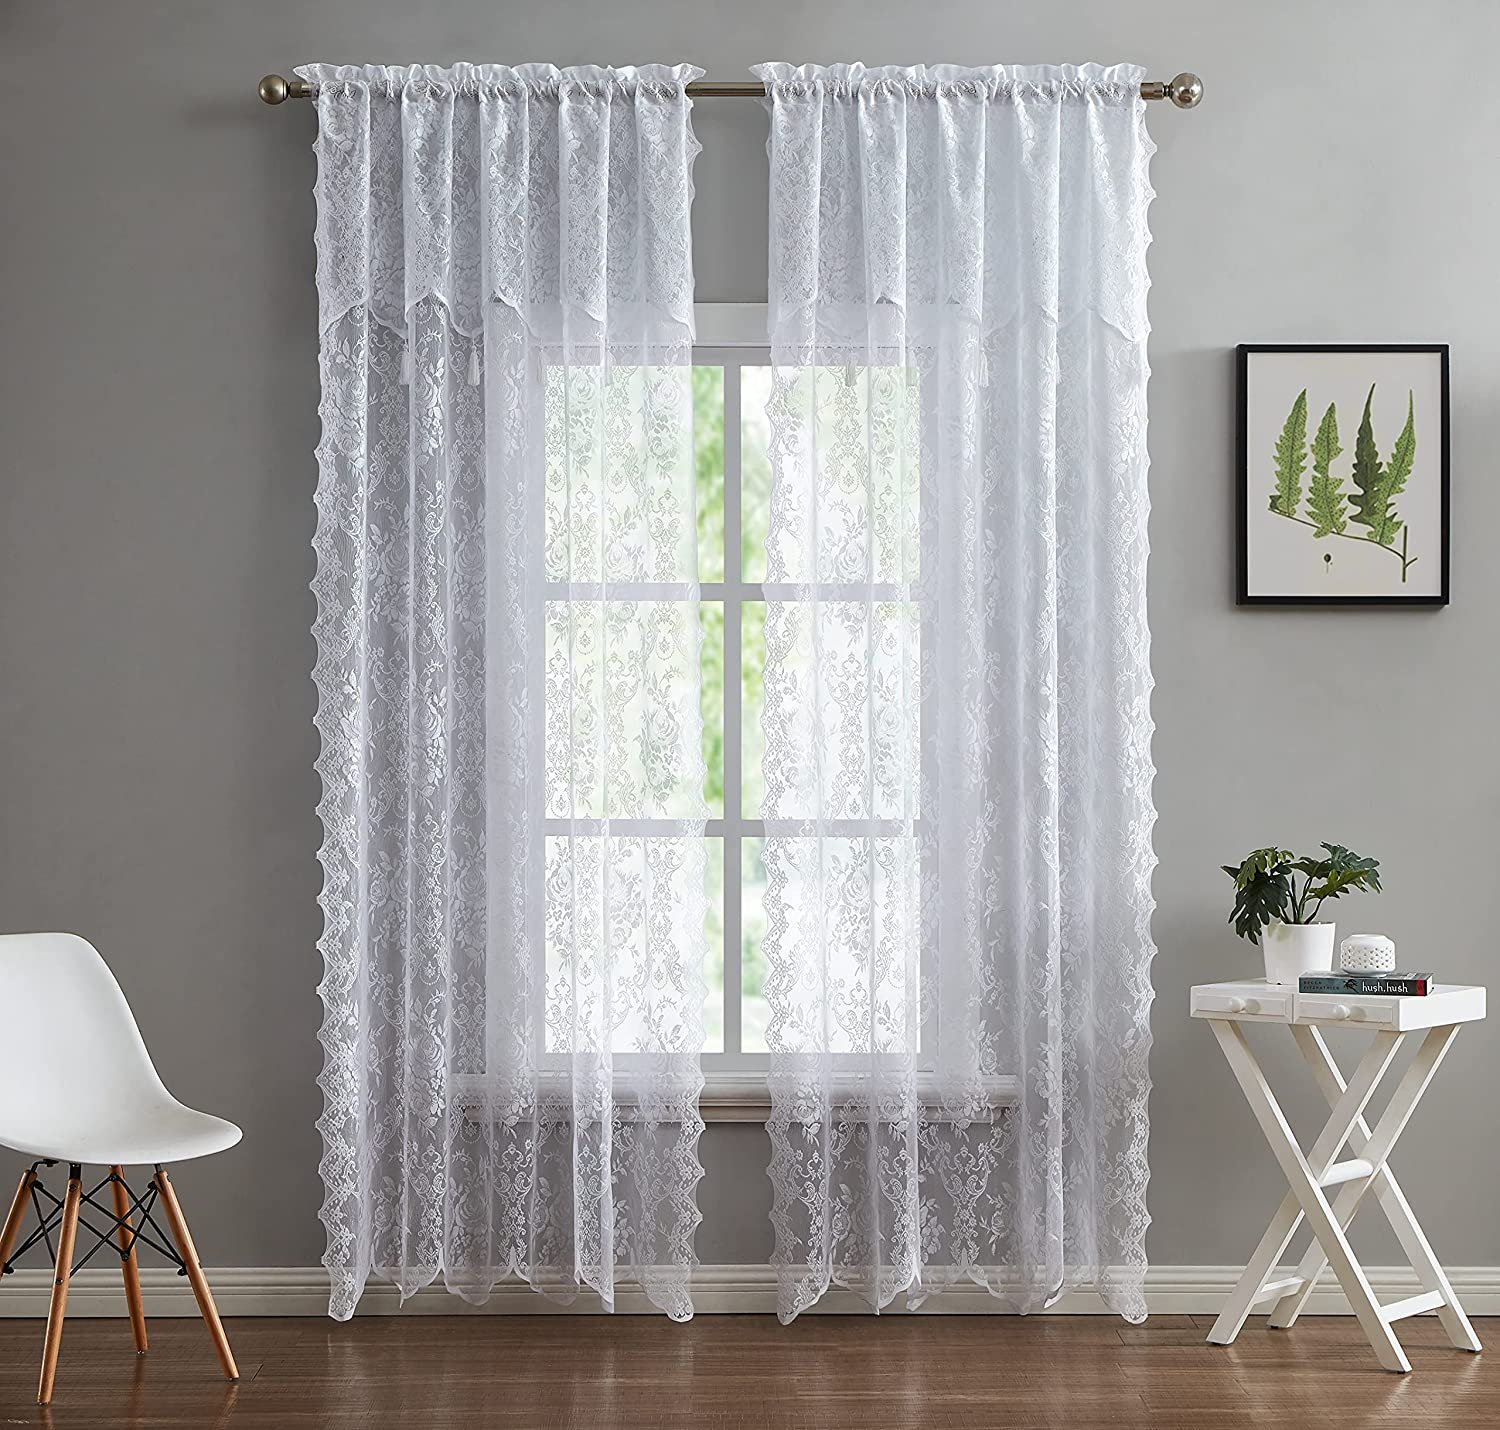 LinenZone - English Denver Mall Rose Store Design Semi Curtain Voile Lace Sheer